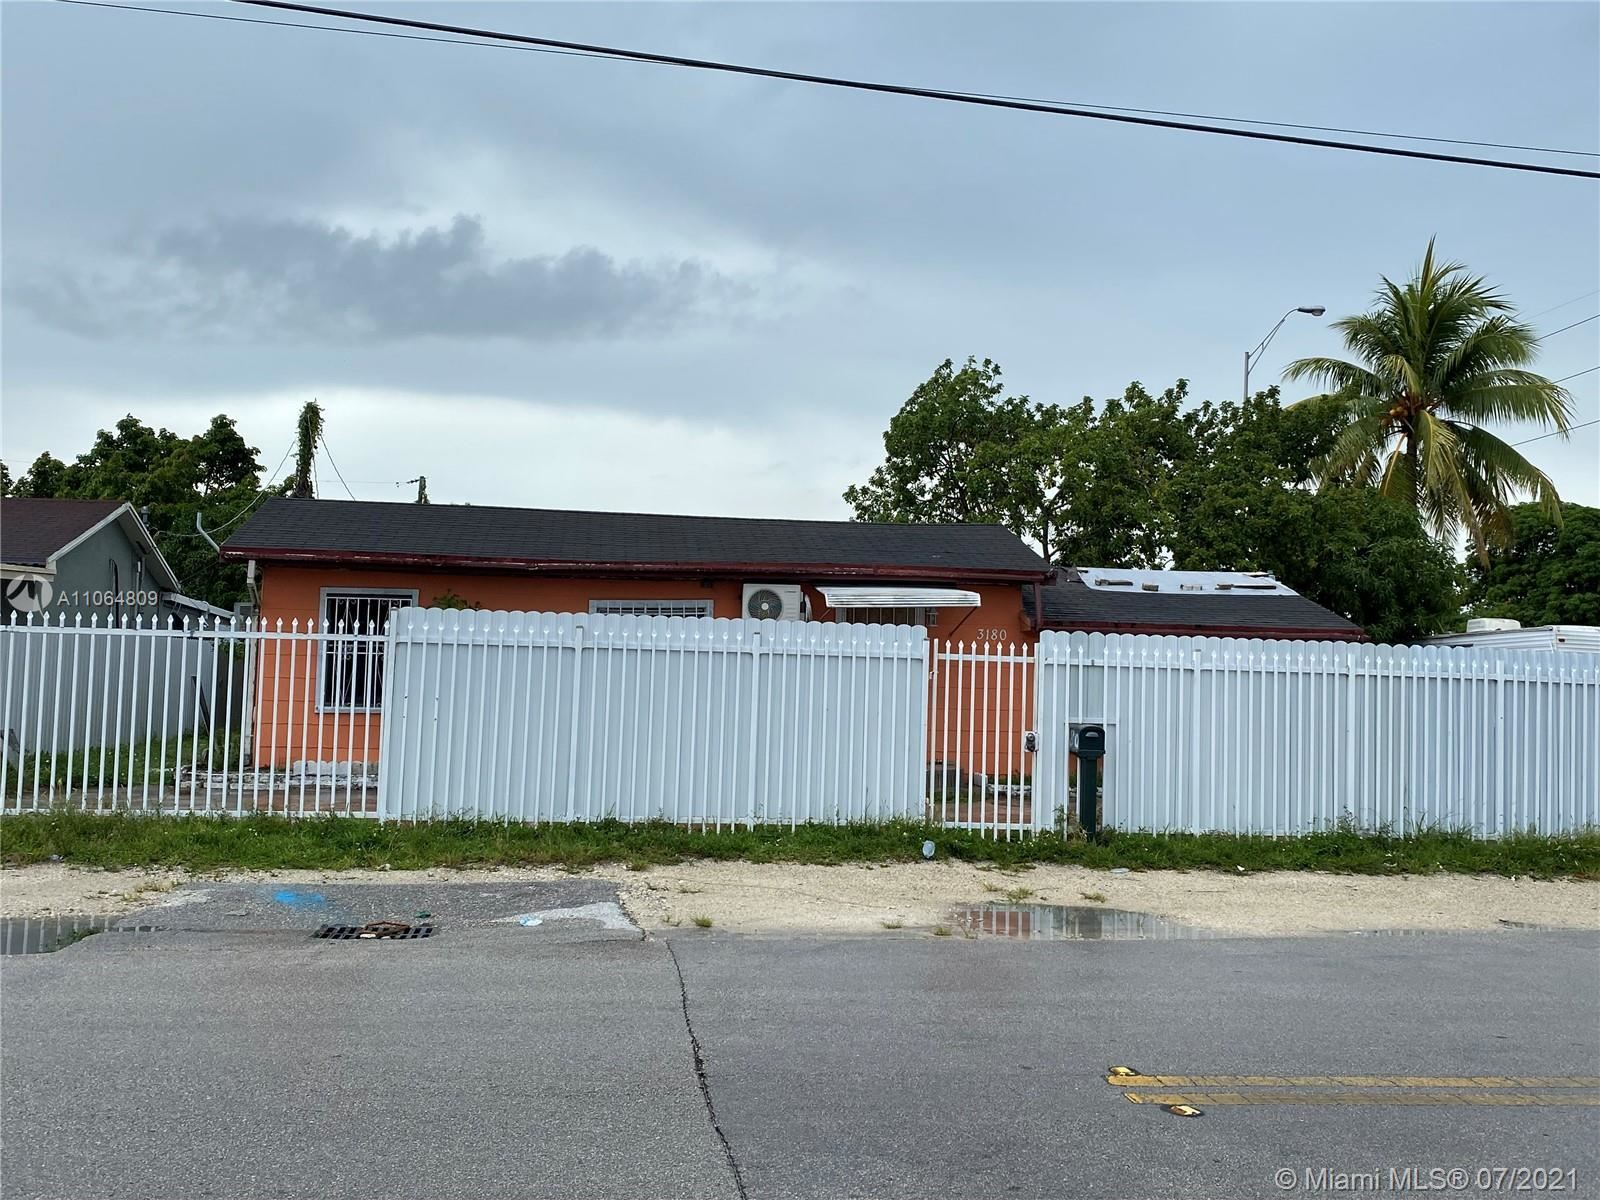 3180 NW 92nd St, Miami, FL 33147 - #: A11064809